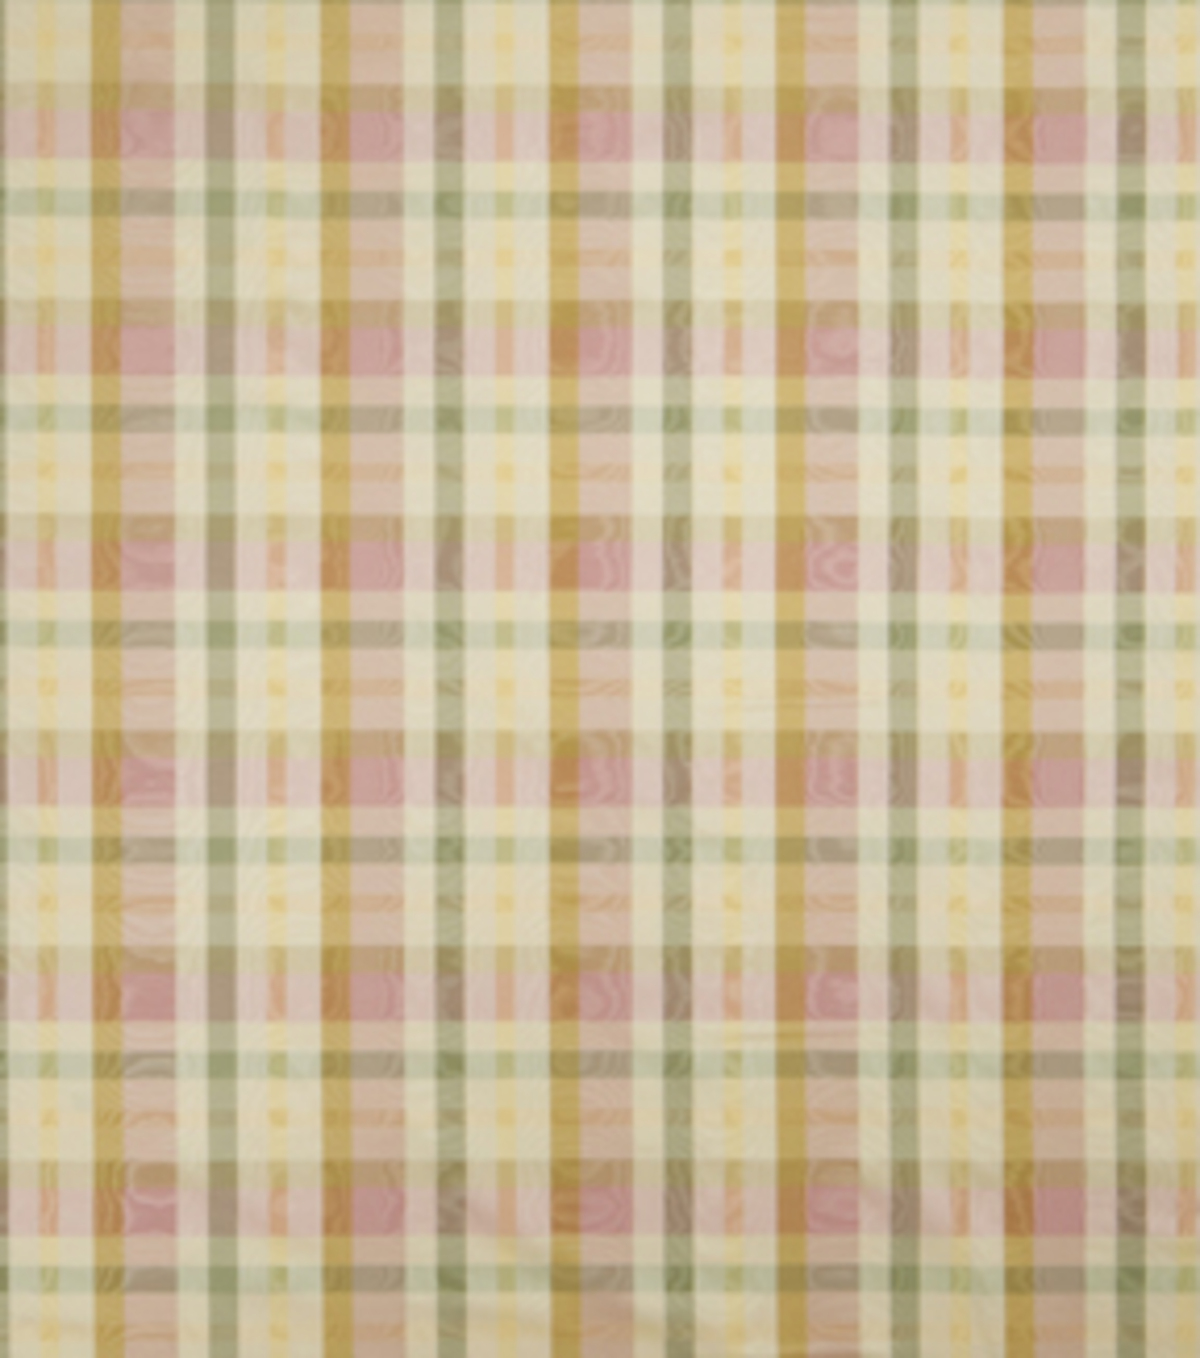 Home Decor 8\u0022x8\u0022 Fabric Swatch-Eaton Square Coincide Sorbet